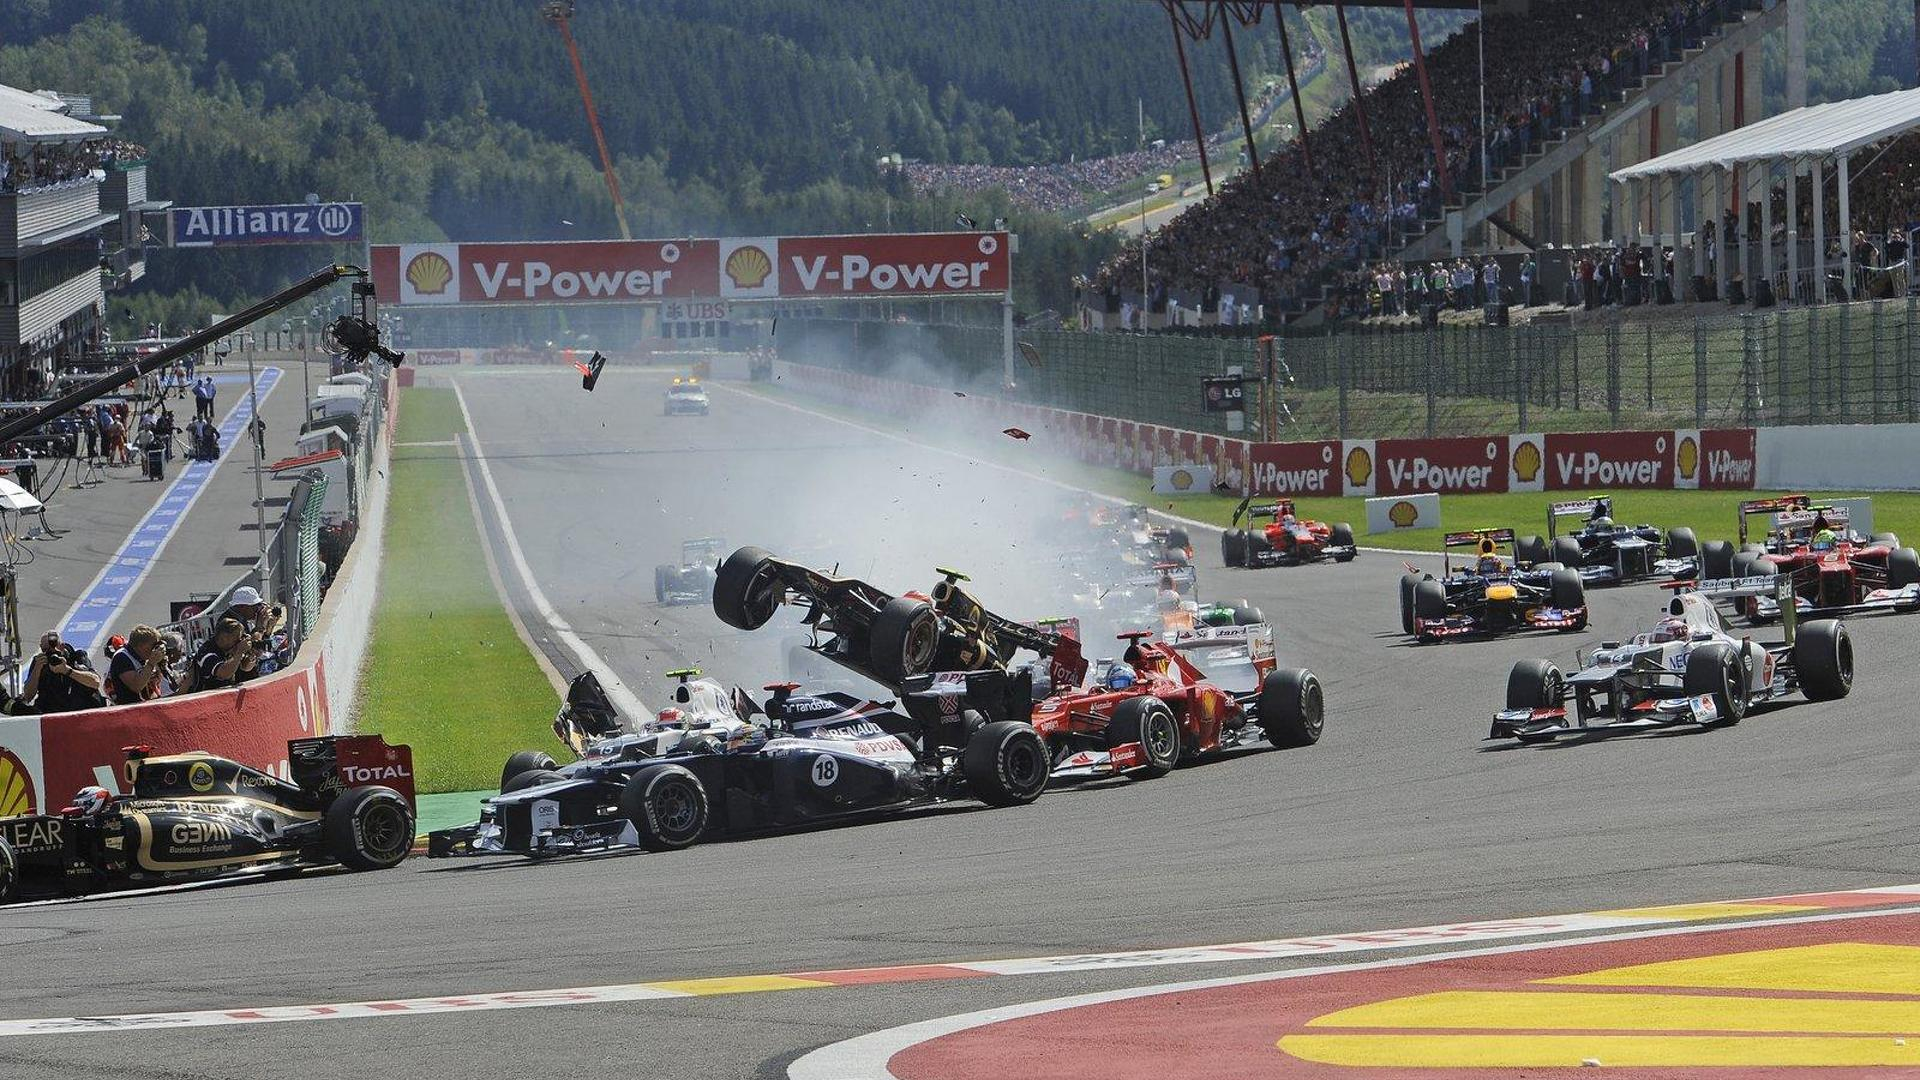 Big crash at 2012 Belgian grand prix - RESULTS [video]